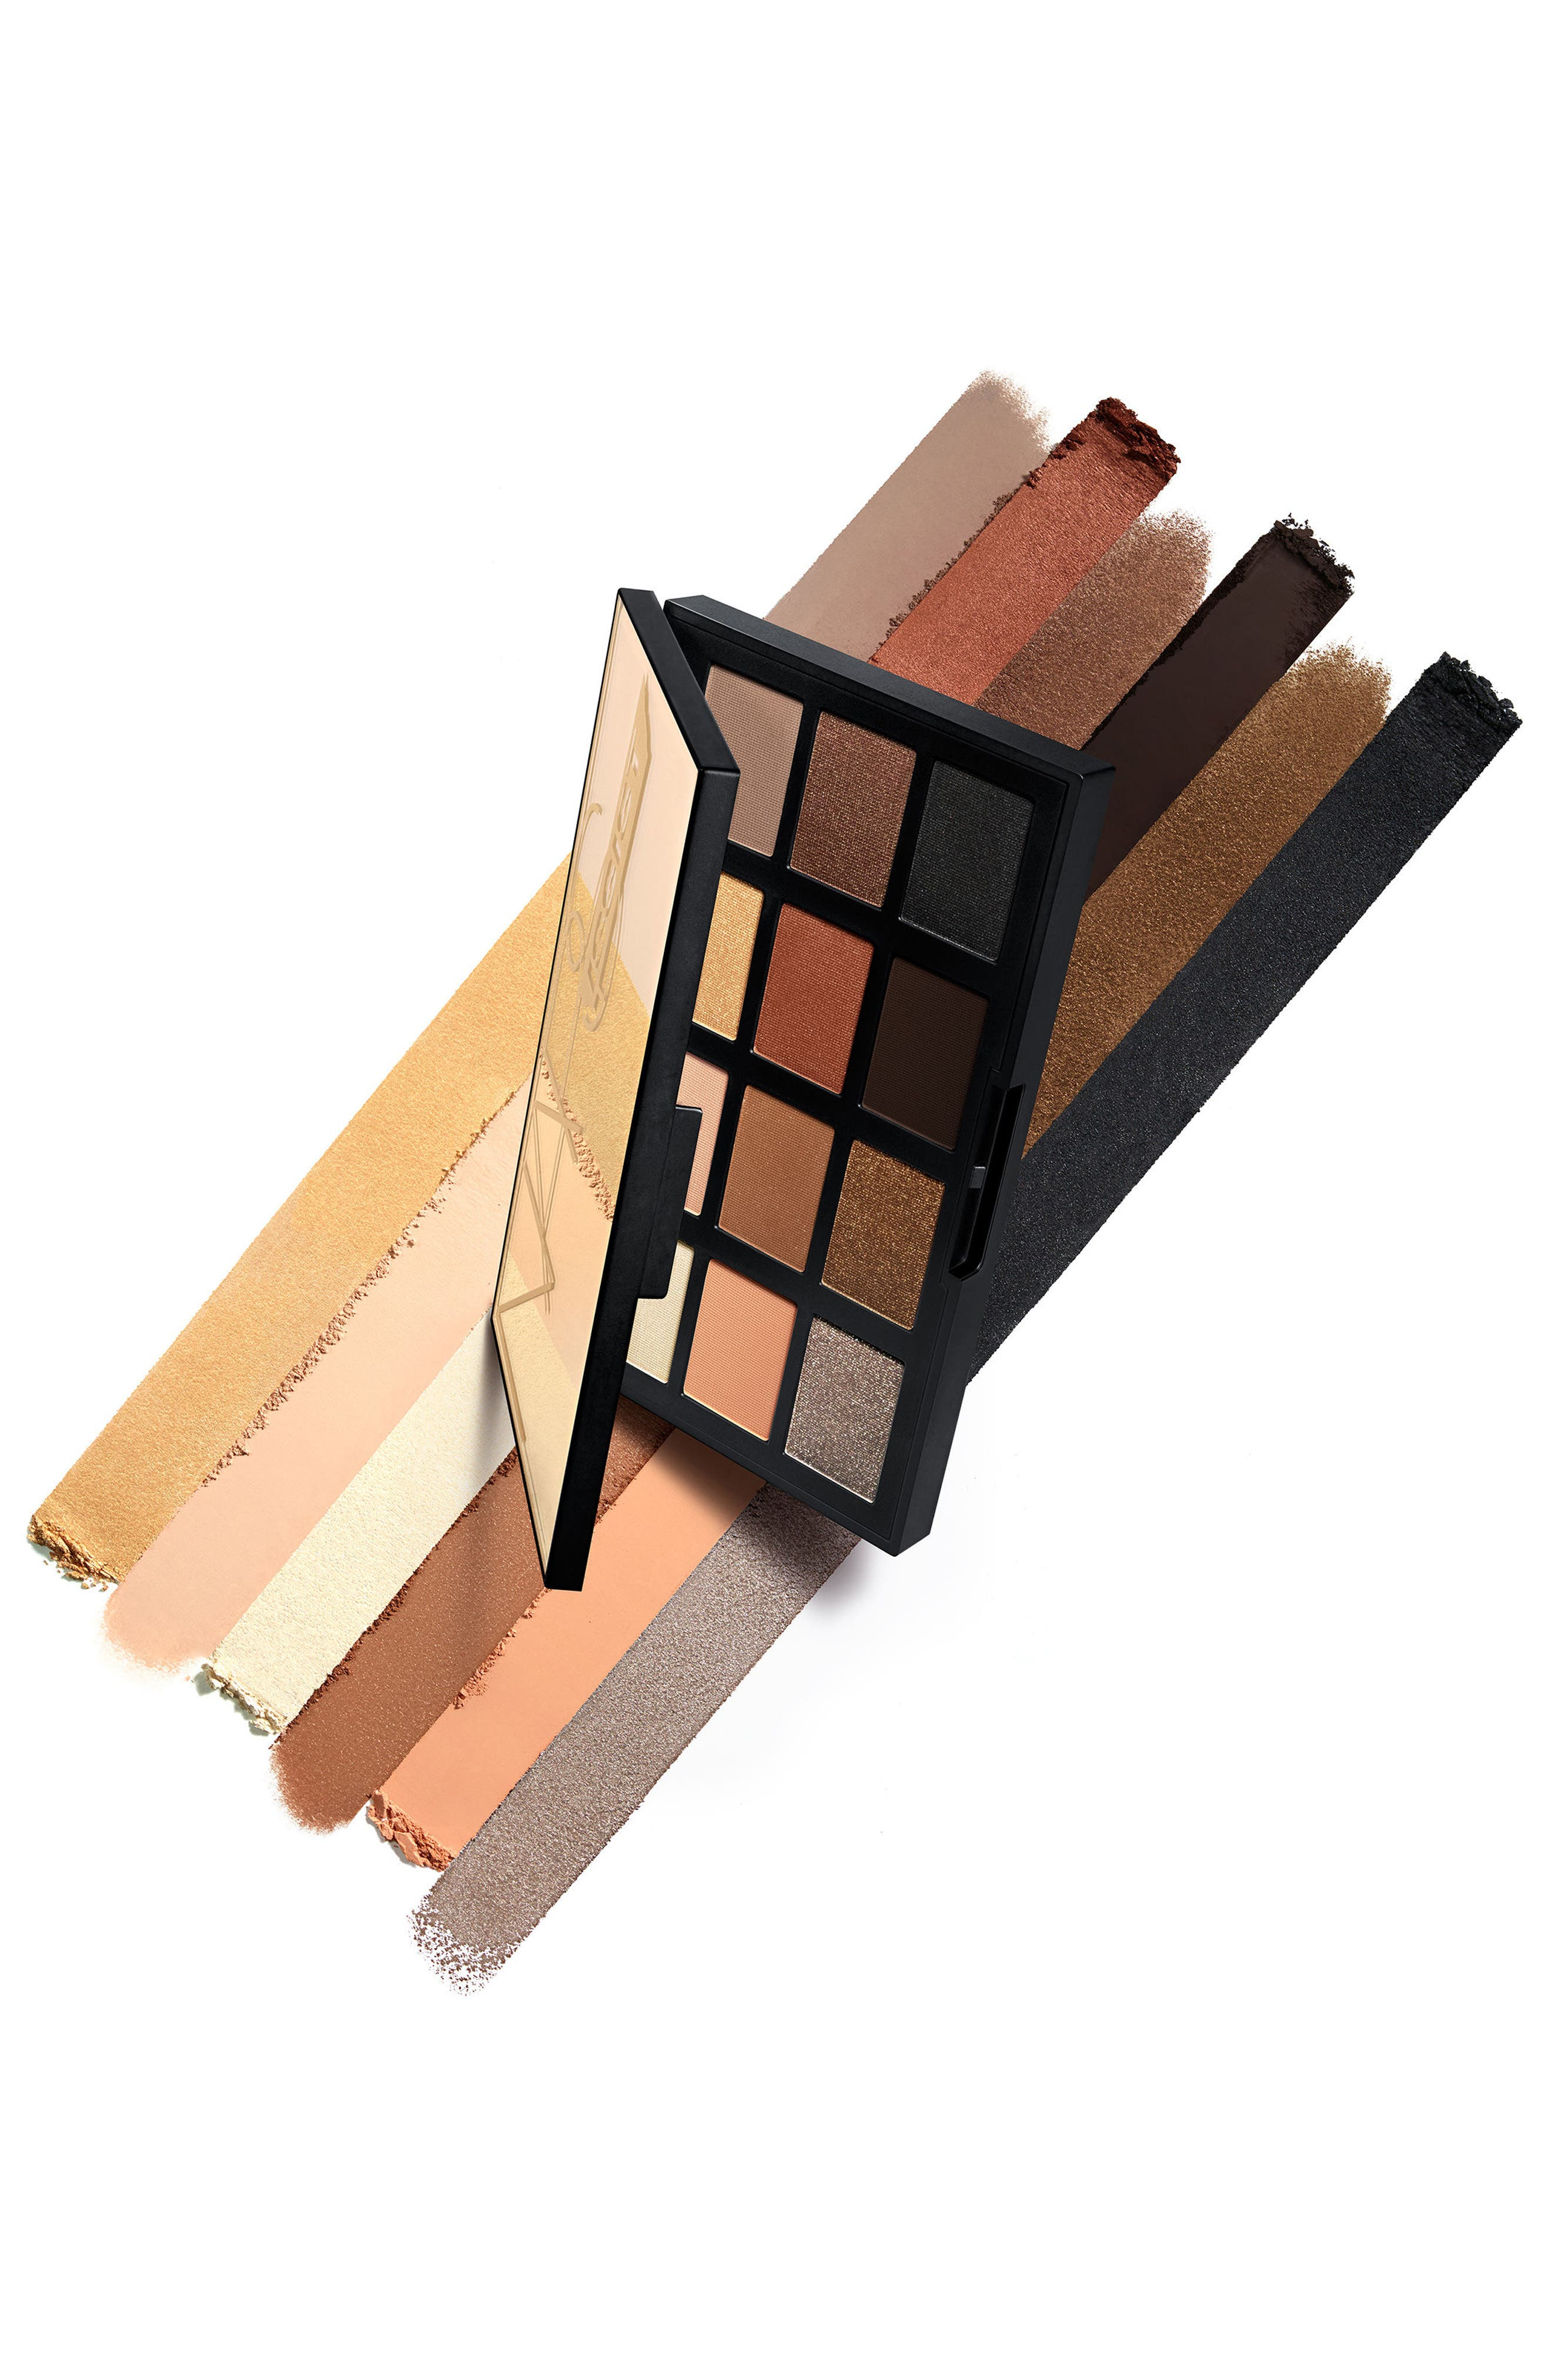 NARSissist Loaded Eyeshadow Palette,                             Alternate thumbnail 3, color,                             200